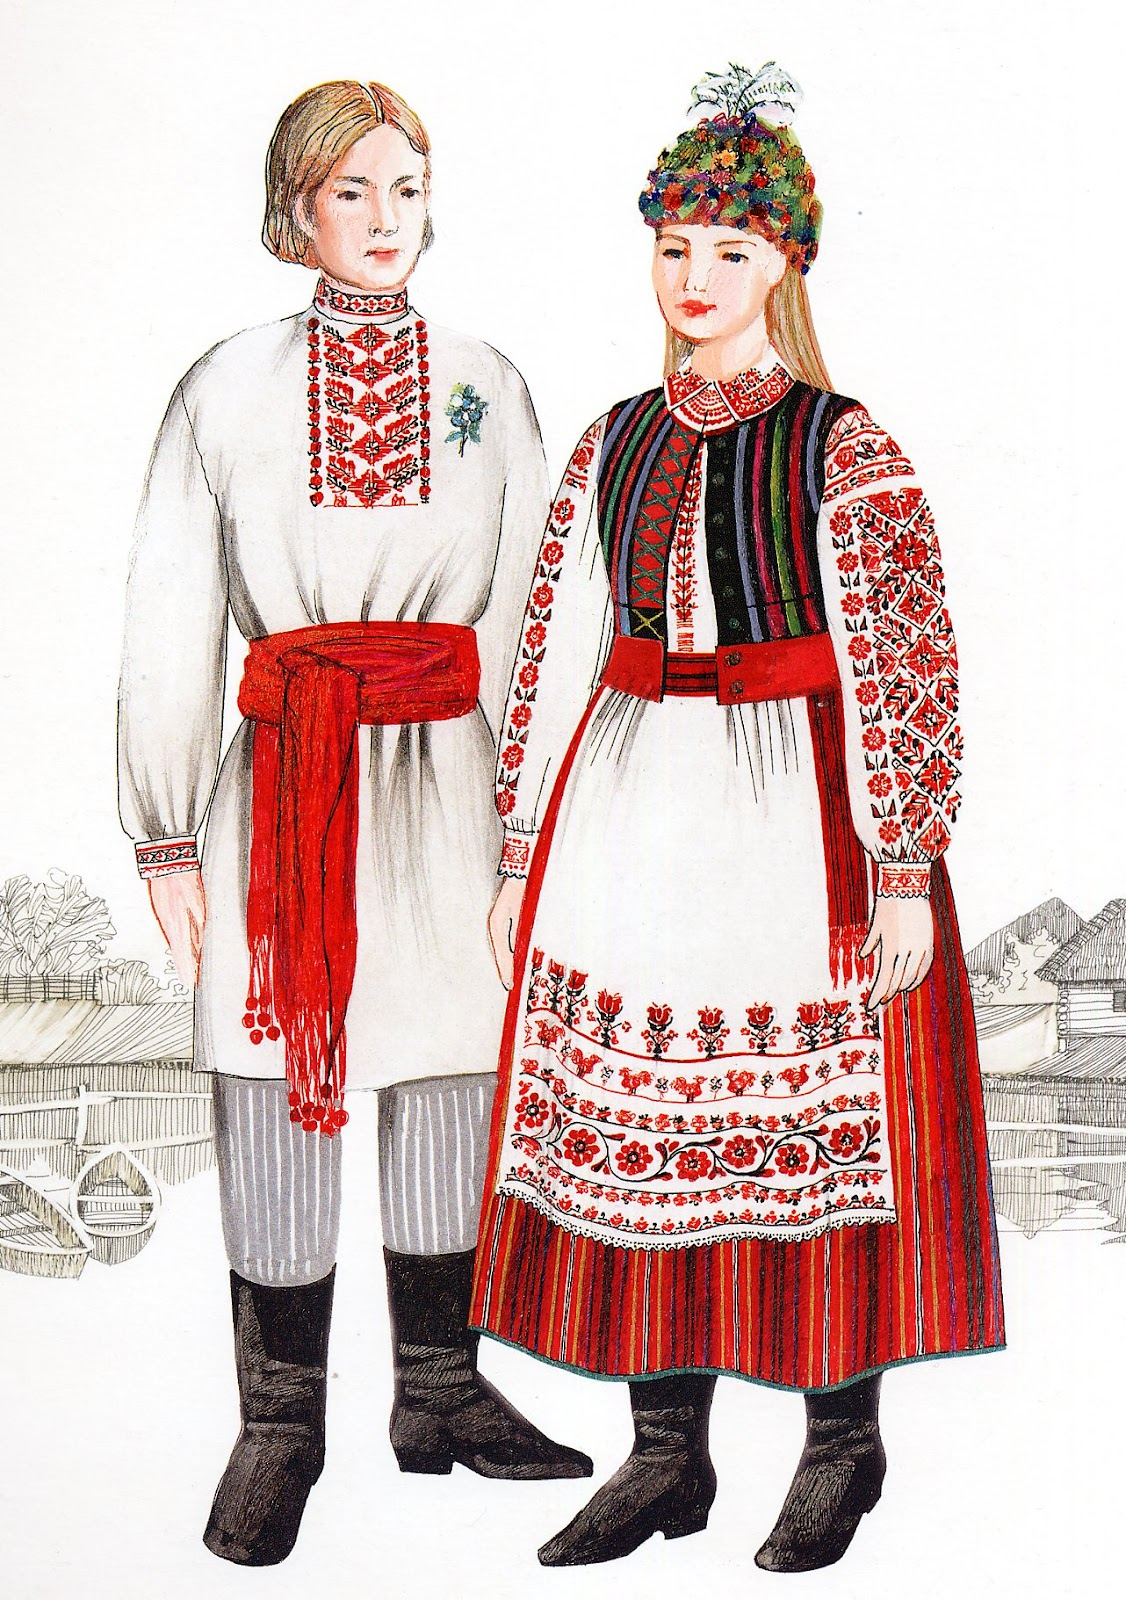 Costume Of West Or Volyn Polissia Ukraine